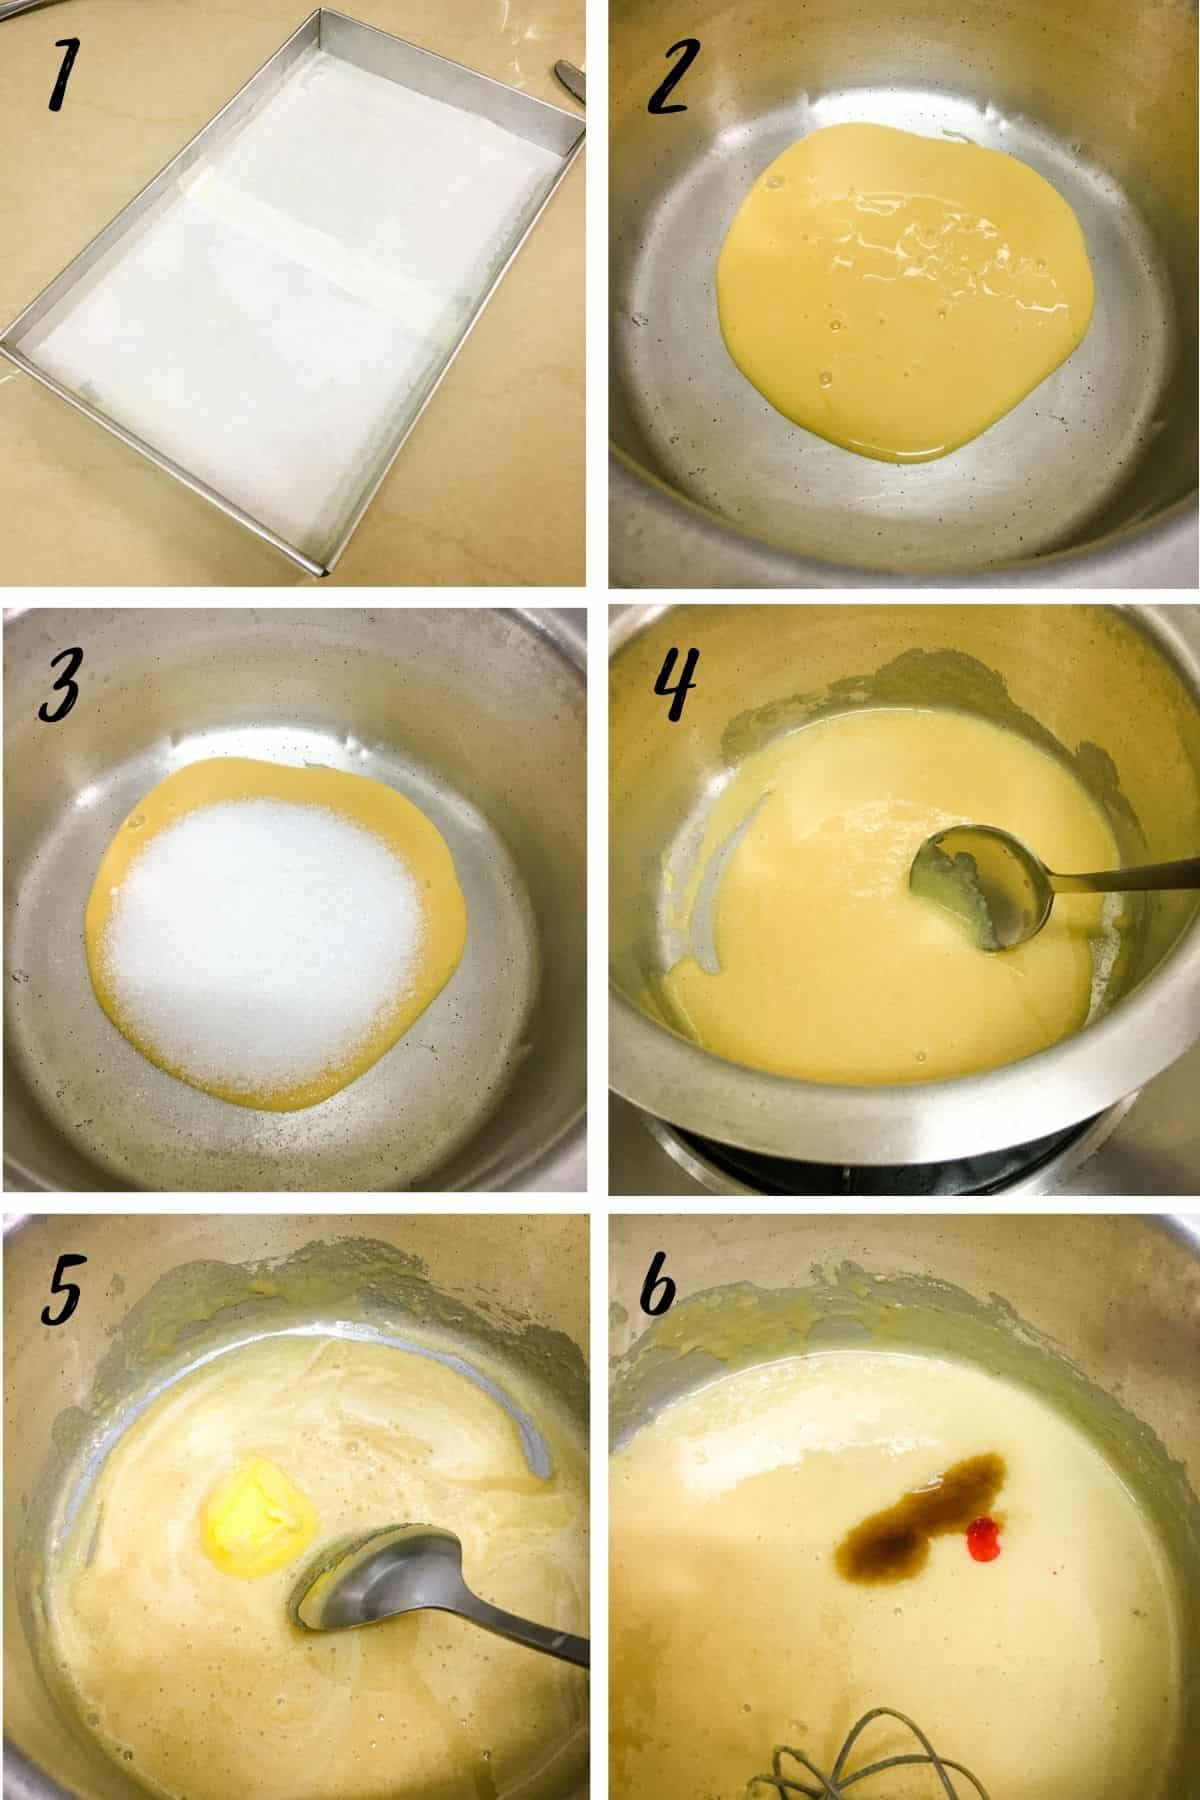 A poster of 6 images showing a lined tray, condensed milk in a pot, sugar added to the pot, using a spoon to stir the contents in the pot, adding butter into it and adding vanilla and red food color to it.